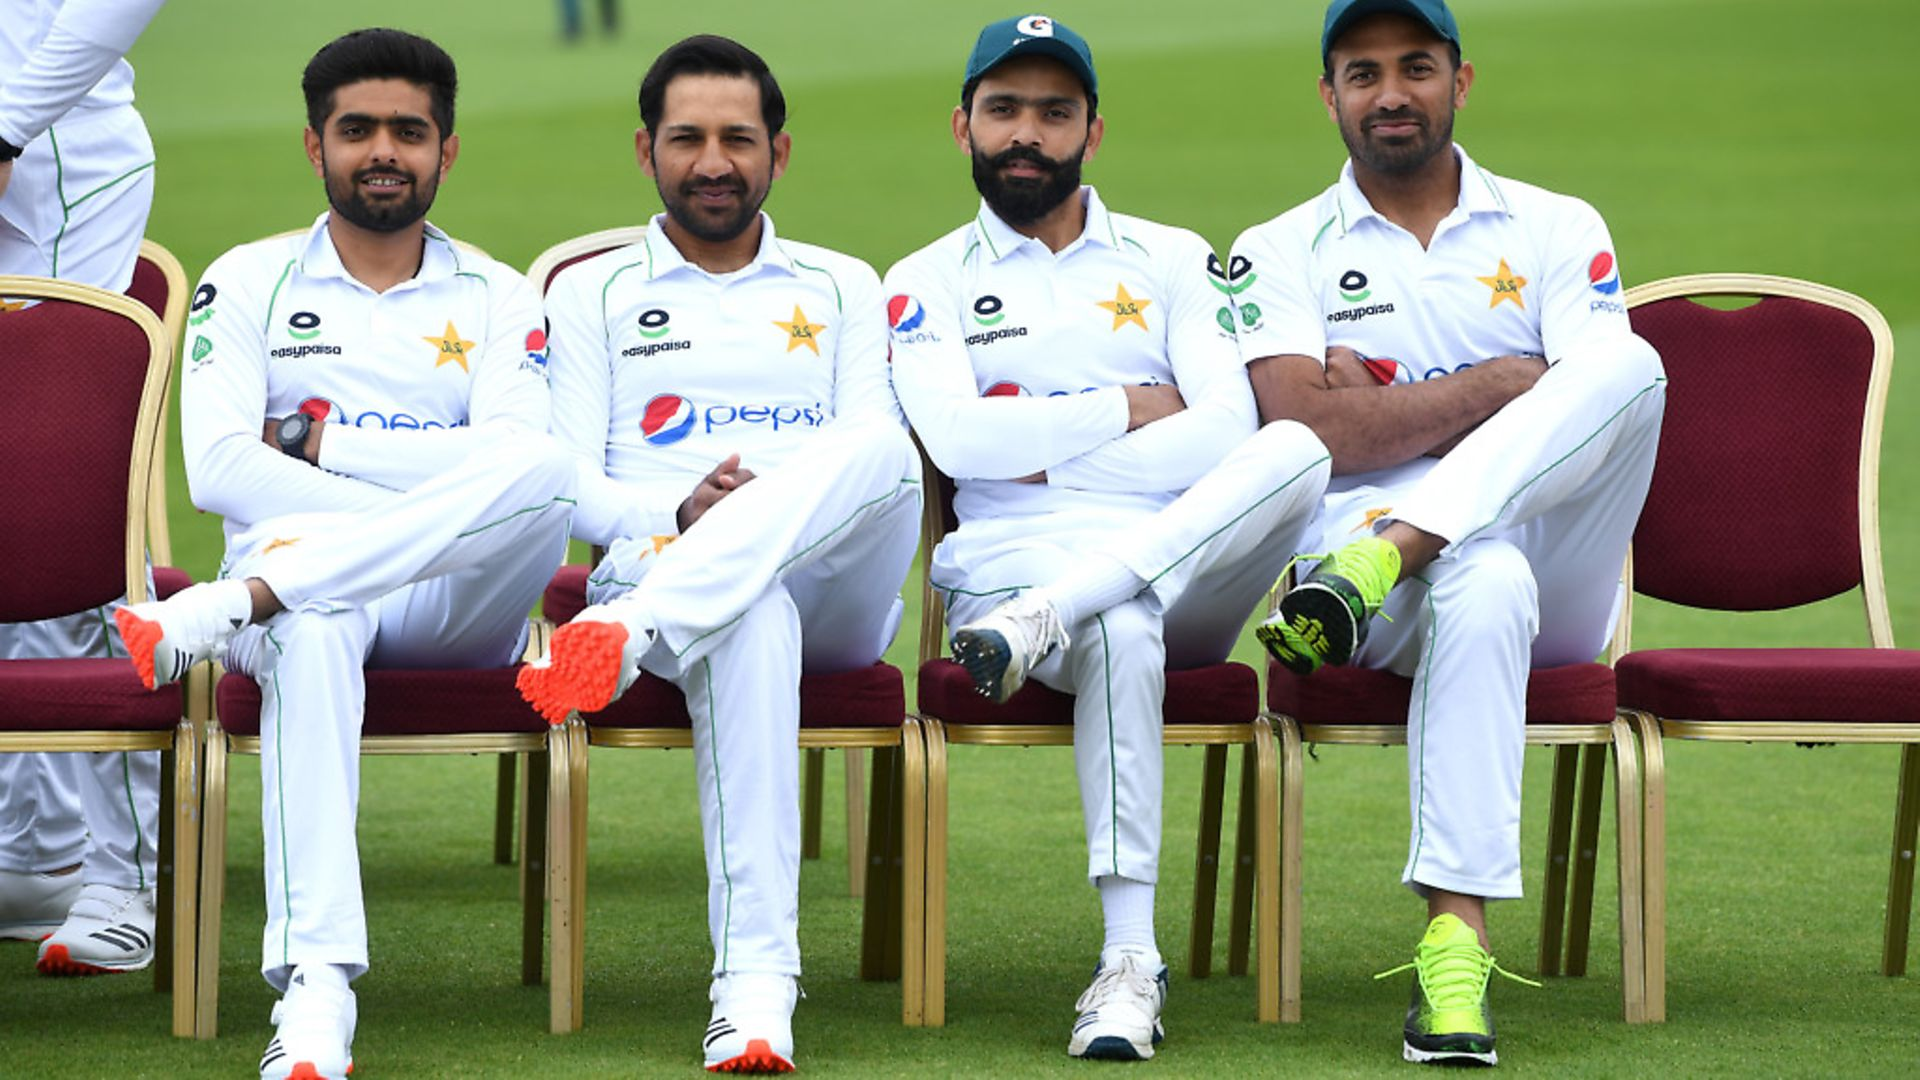 Babar Azam, Sarfaraz Ahmed, Fawad Alam and Wahab Riaz of Pakistan pose for a photo during a Pakistan Nets Session at Emirates Old Trafford on August 04, 2020 in Manchester. (Photo by Gareth Copley/Getty Images) - Credit: Getty Images